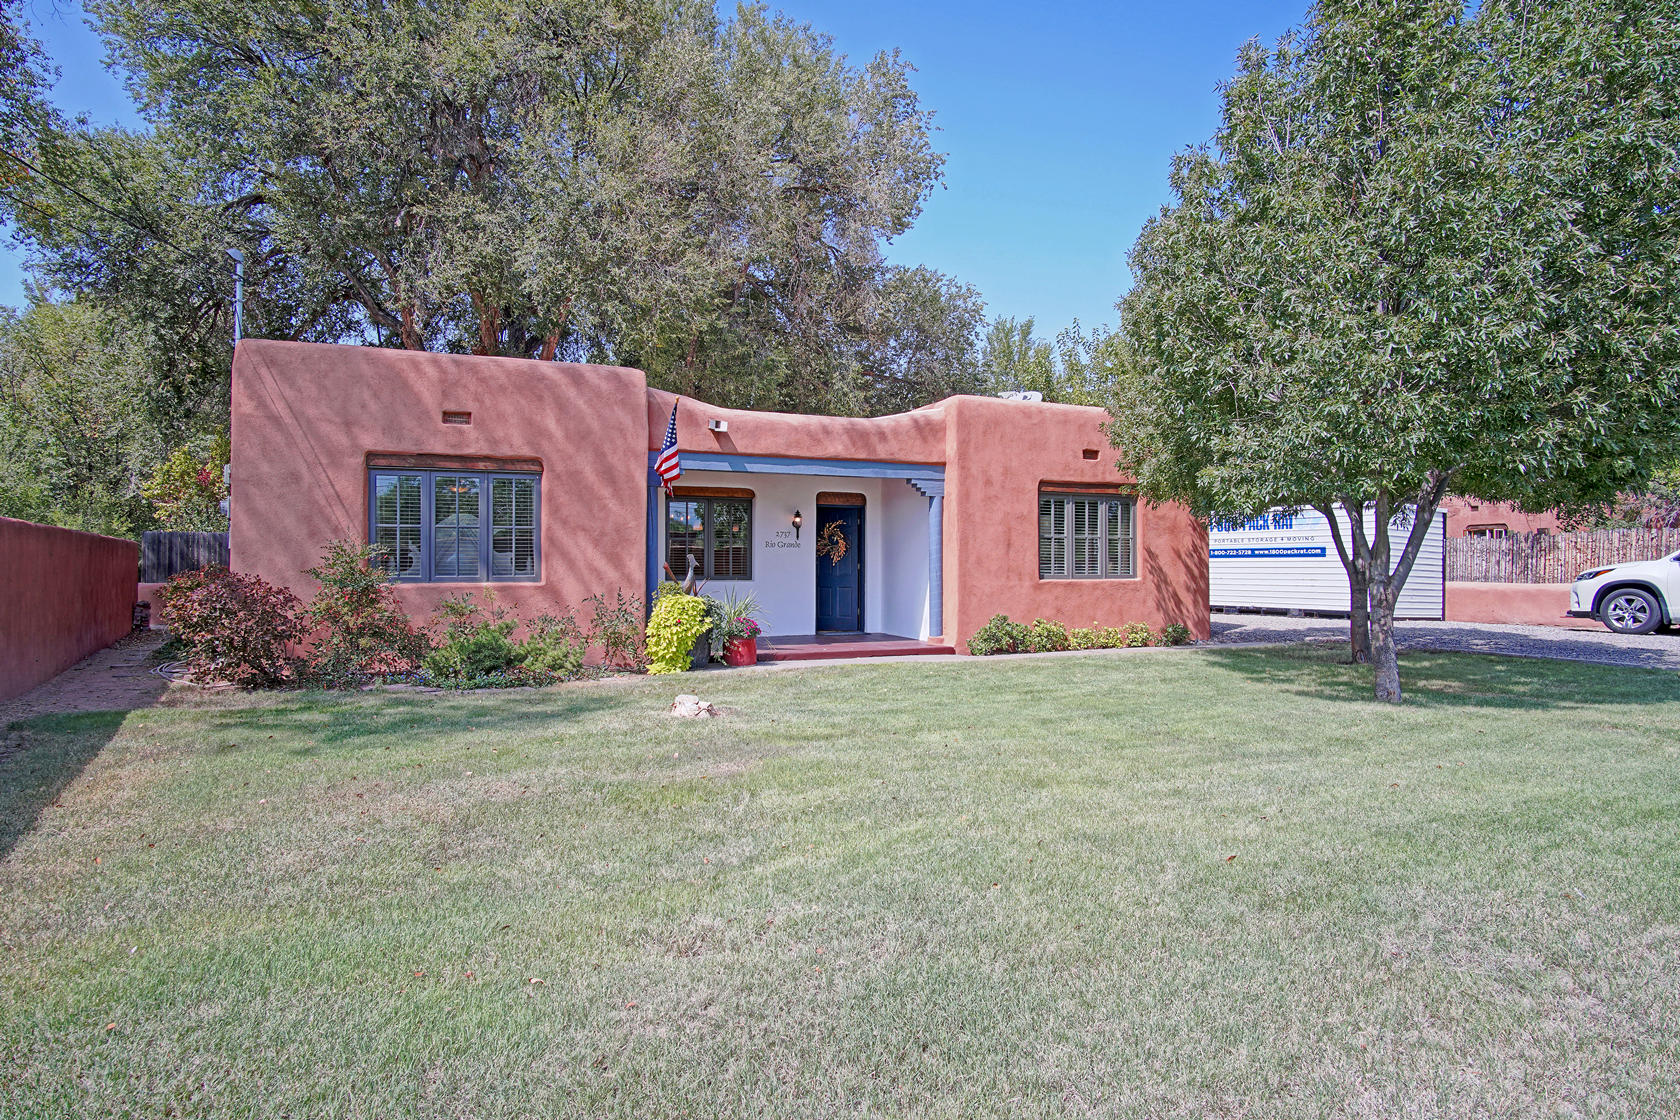 Quintessential Near North Valley Charmer!  Built 1941 +/-  on .33 ac Lot. 2165SF PLUS workshop/gym/studio 198SF.  Gourmet kitchen to die for! Viking Professional 6 burner duel fuel range. Viking refrigerator/hood/ microwave. Bosch dishwasher. Granite counters & custom cherry Shaker style cabinets!   4 bdrms (3 on southside of home & 1 on Northside.)  2  baths. Formal Living room w/ wood burning fireplace & original hardwood floors. Huge family room  w/ brick floors. Separate laundry room.  Gorgeous grass yard & large trees is fenced. Chicken coop ready for new chicks!  Covered Carport  plus plenty of parking behind gate for all your toys.  Tons of parking for friends & family in driveway. TPO roof.  Evap. cooling. Inspections/ Repairs completed. A Must-See